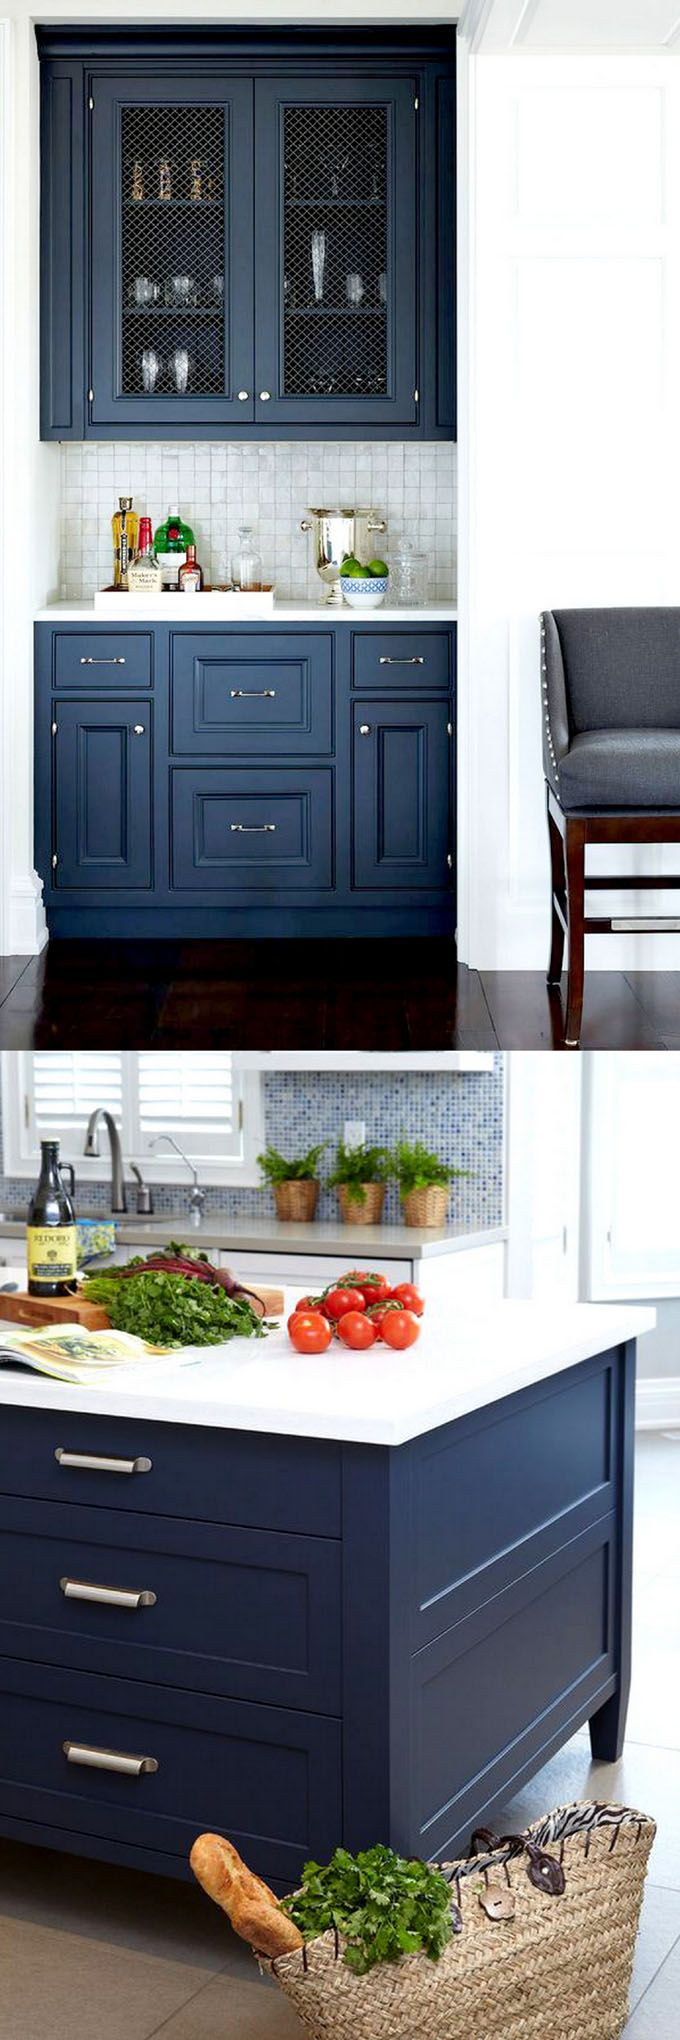 Kitchens Colors 17 Best Ideas About Kitchen Paint Colors On Pinterest Kitchen